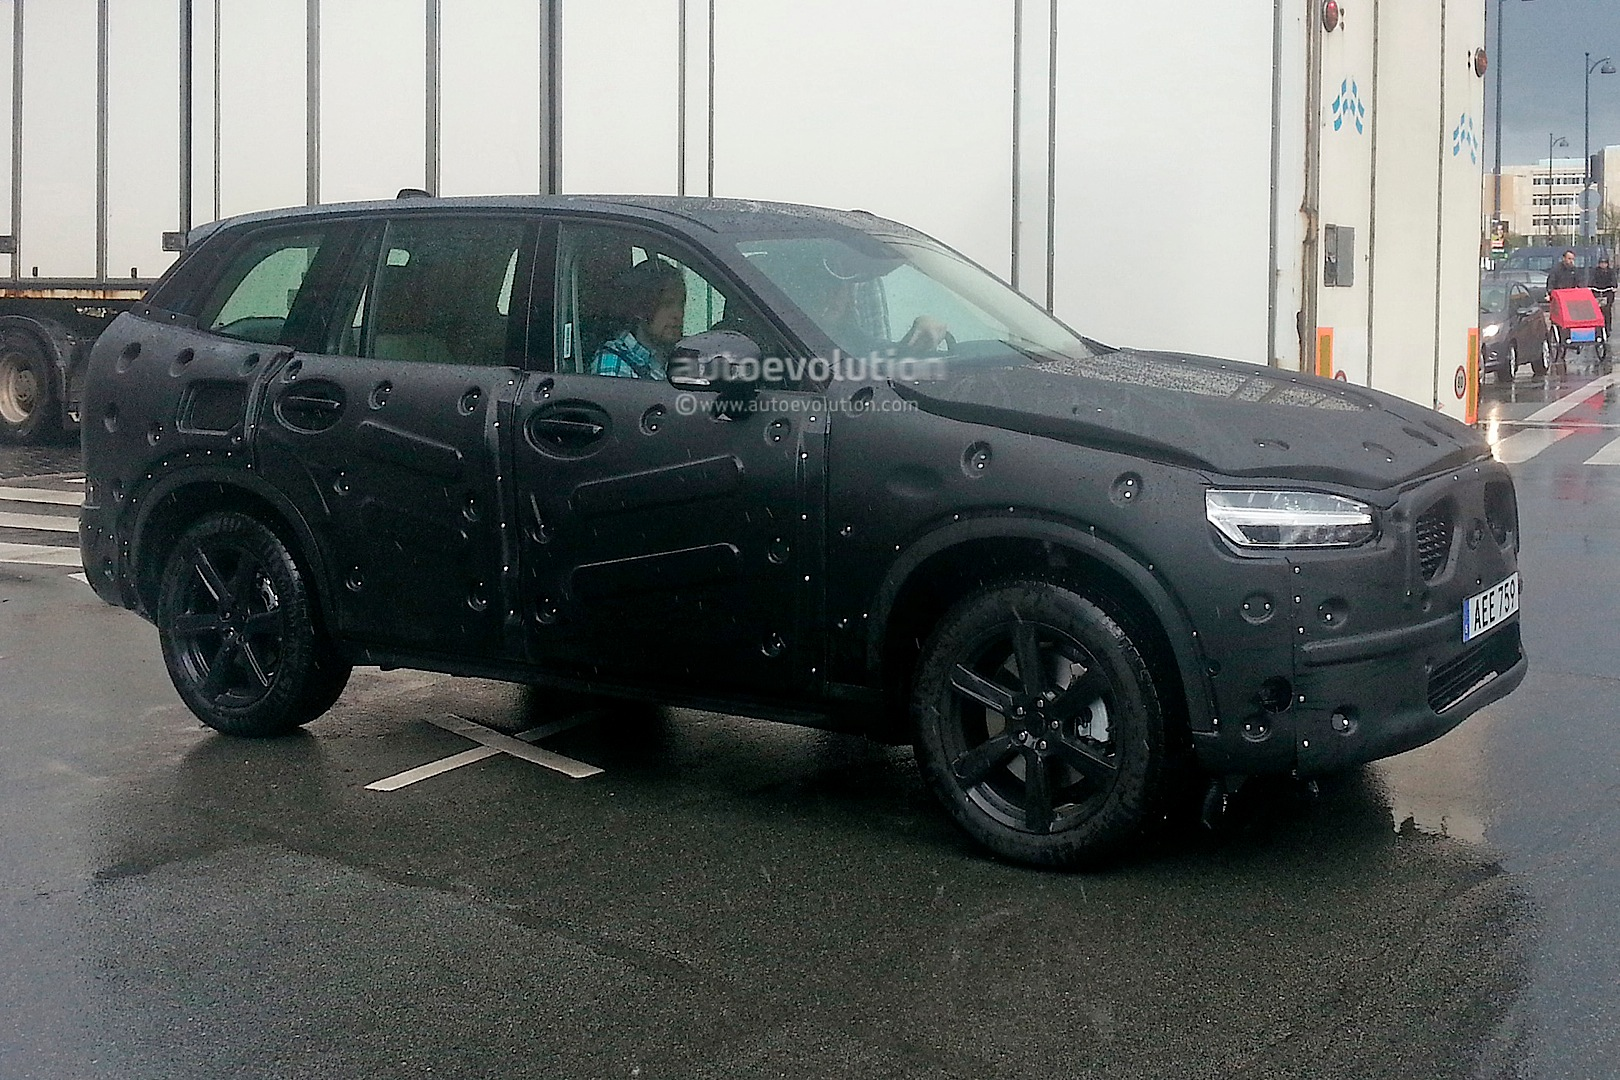 second generation volvo xc90 spied in detail getting ready to launch in 2015 autoevolution. Black Bedroom Furniture Sets. Home Design Ideas